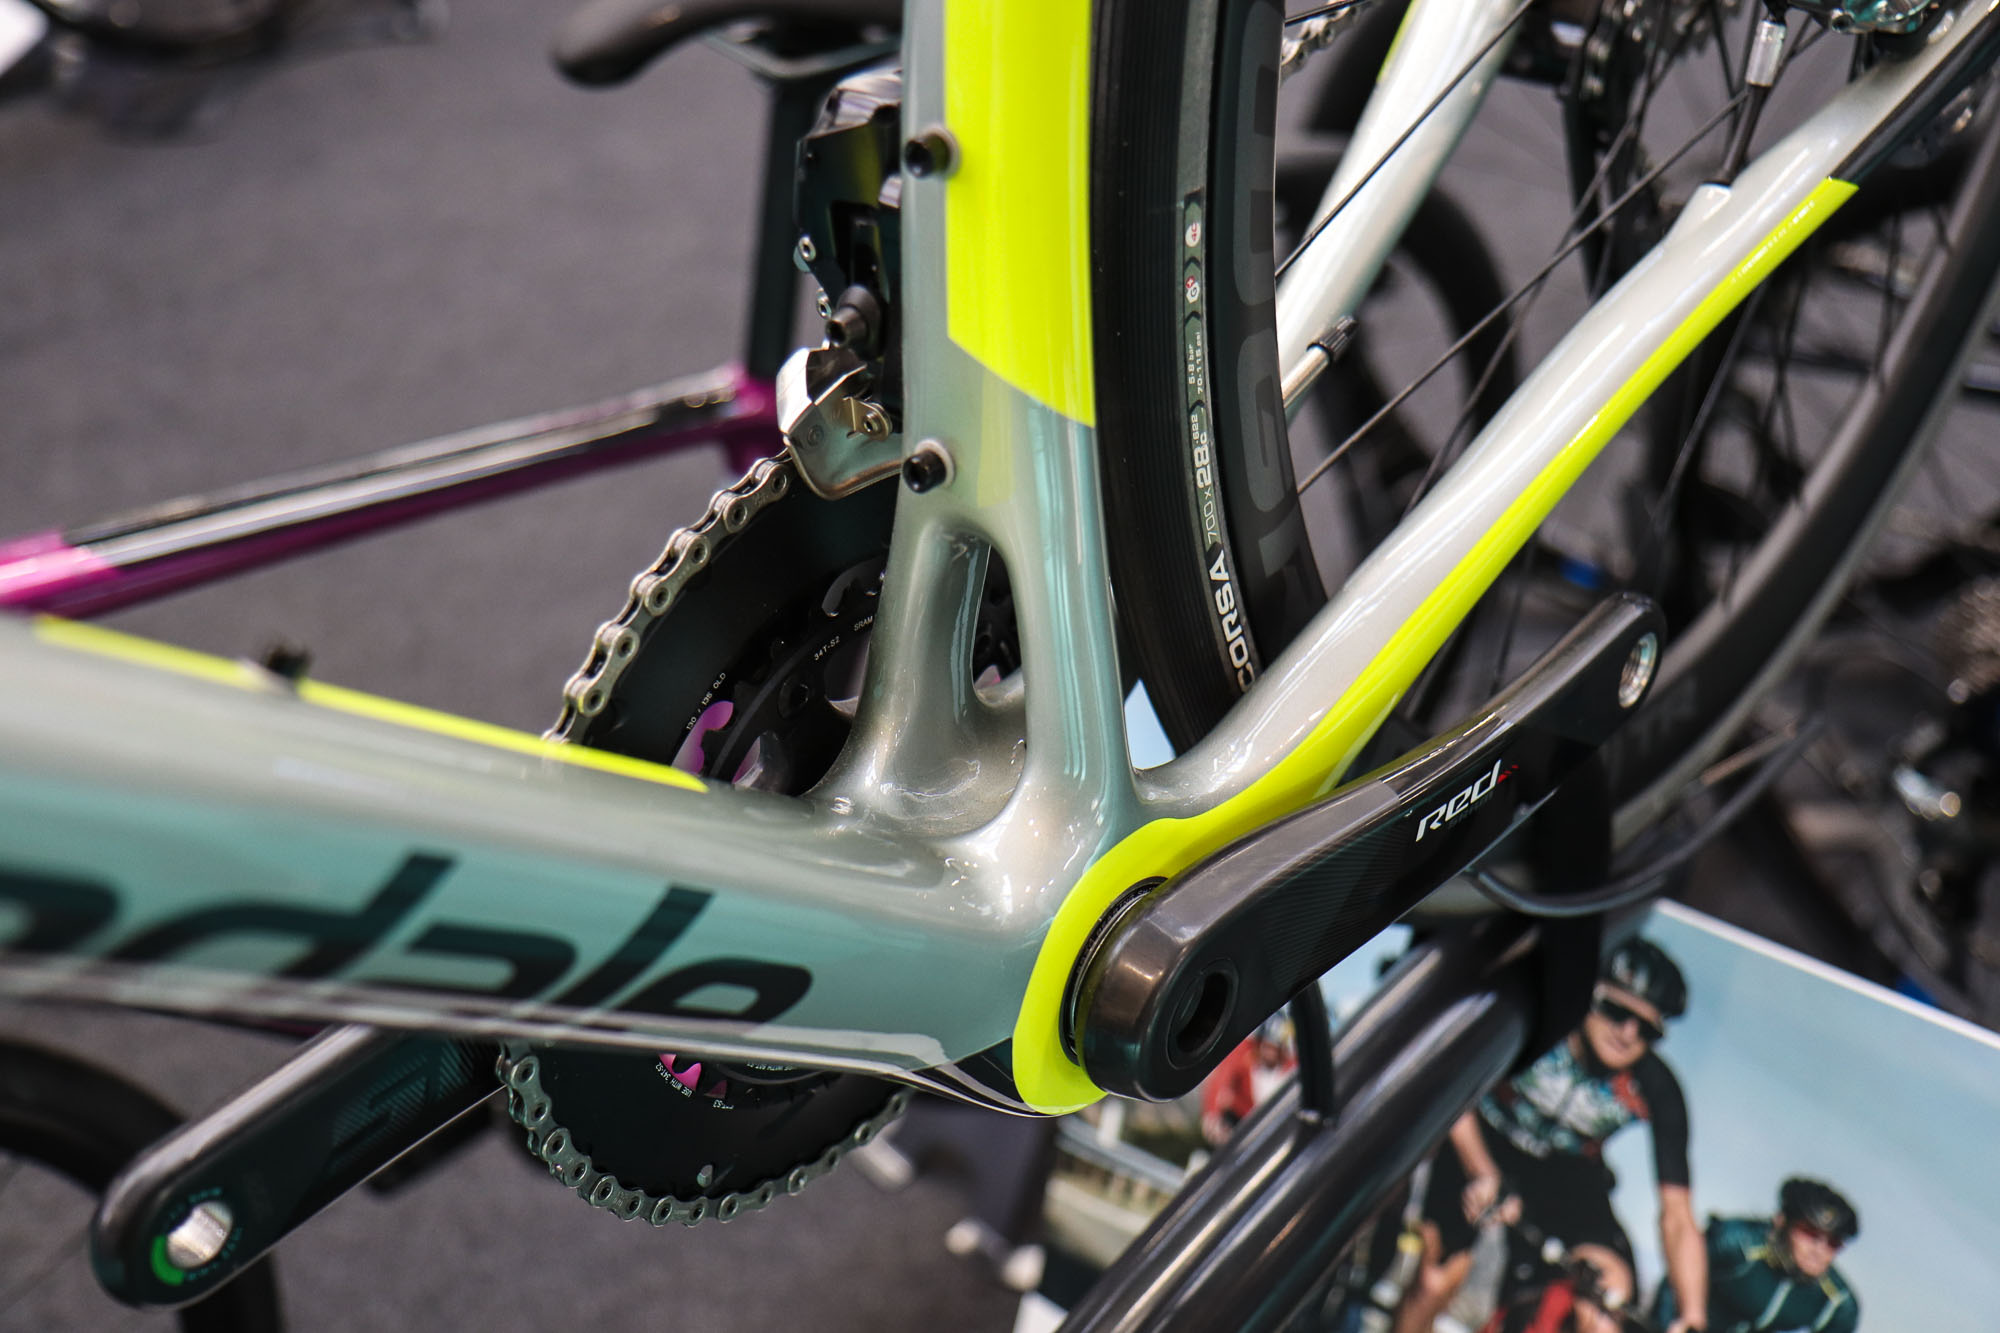 HUGE Cycle Show first look faves: New bikes from Mason, Kinesis